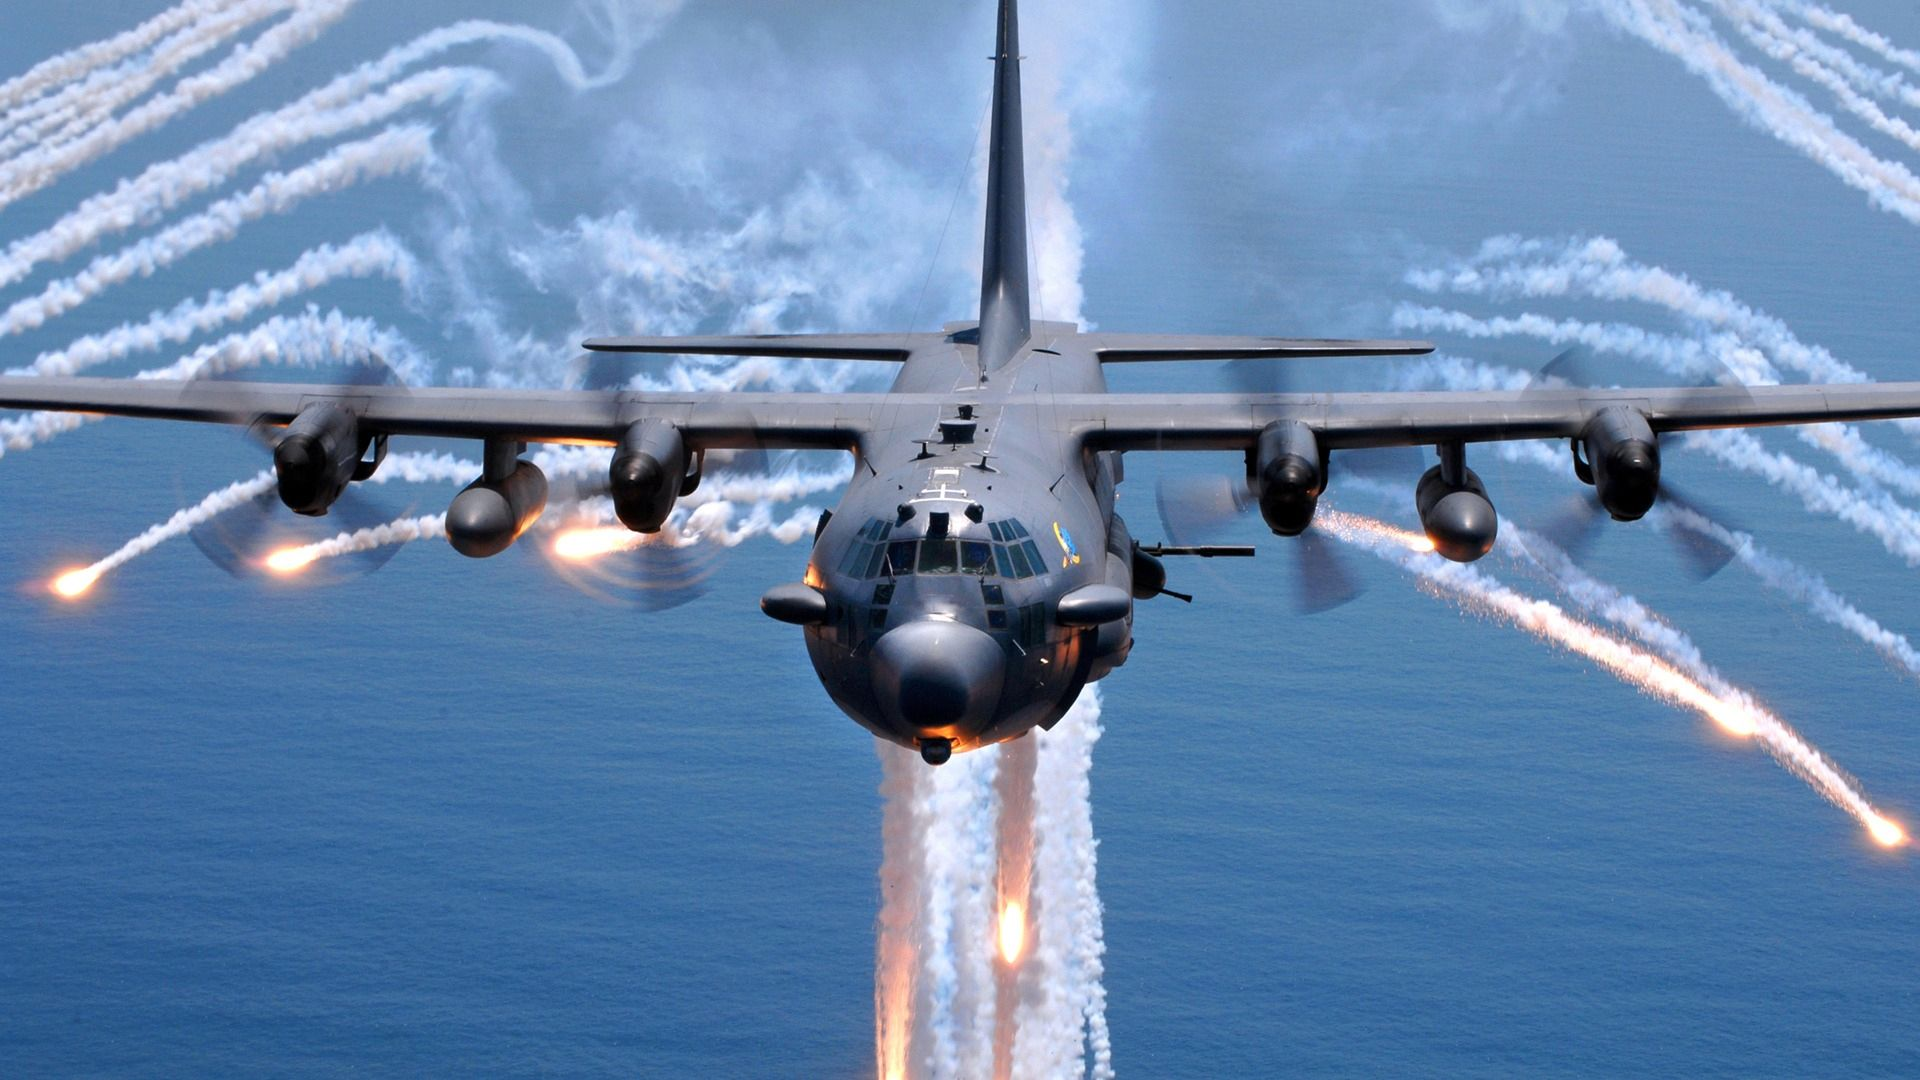 C130 Hercules...would love to fly this machine